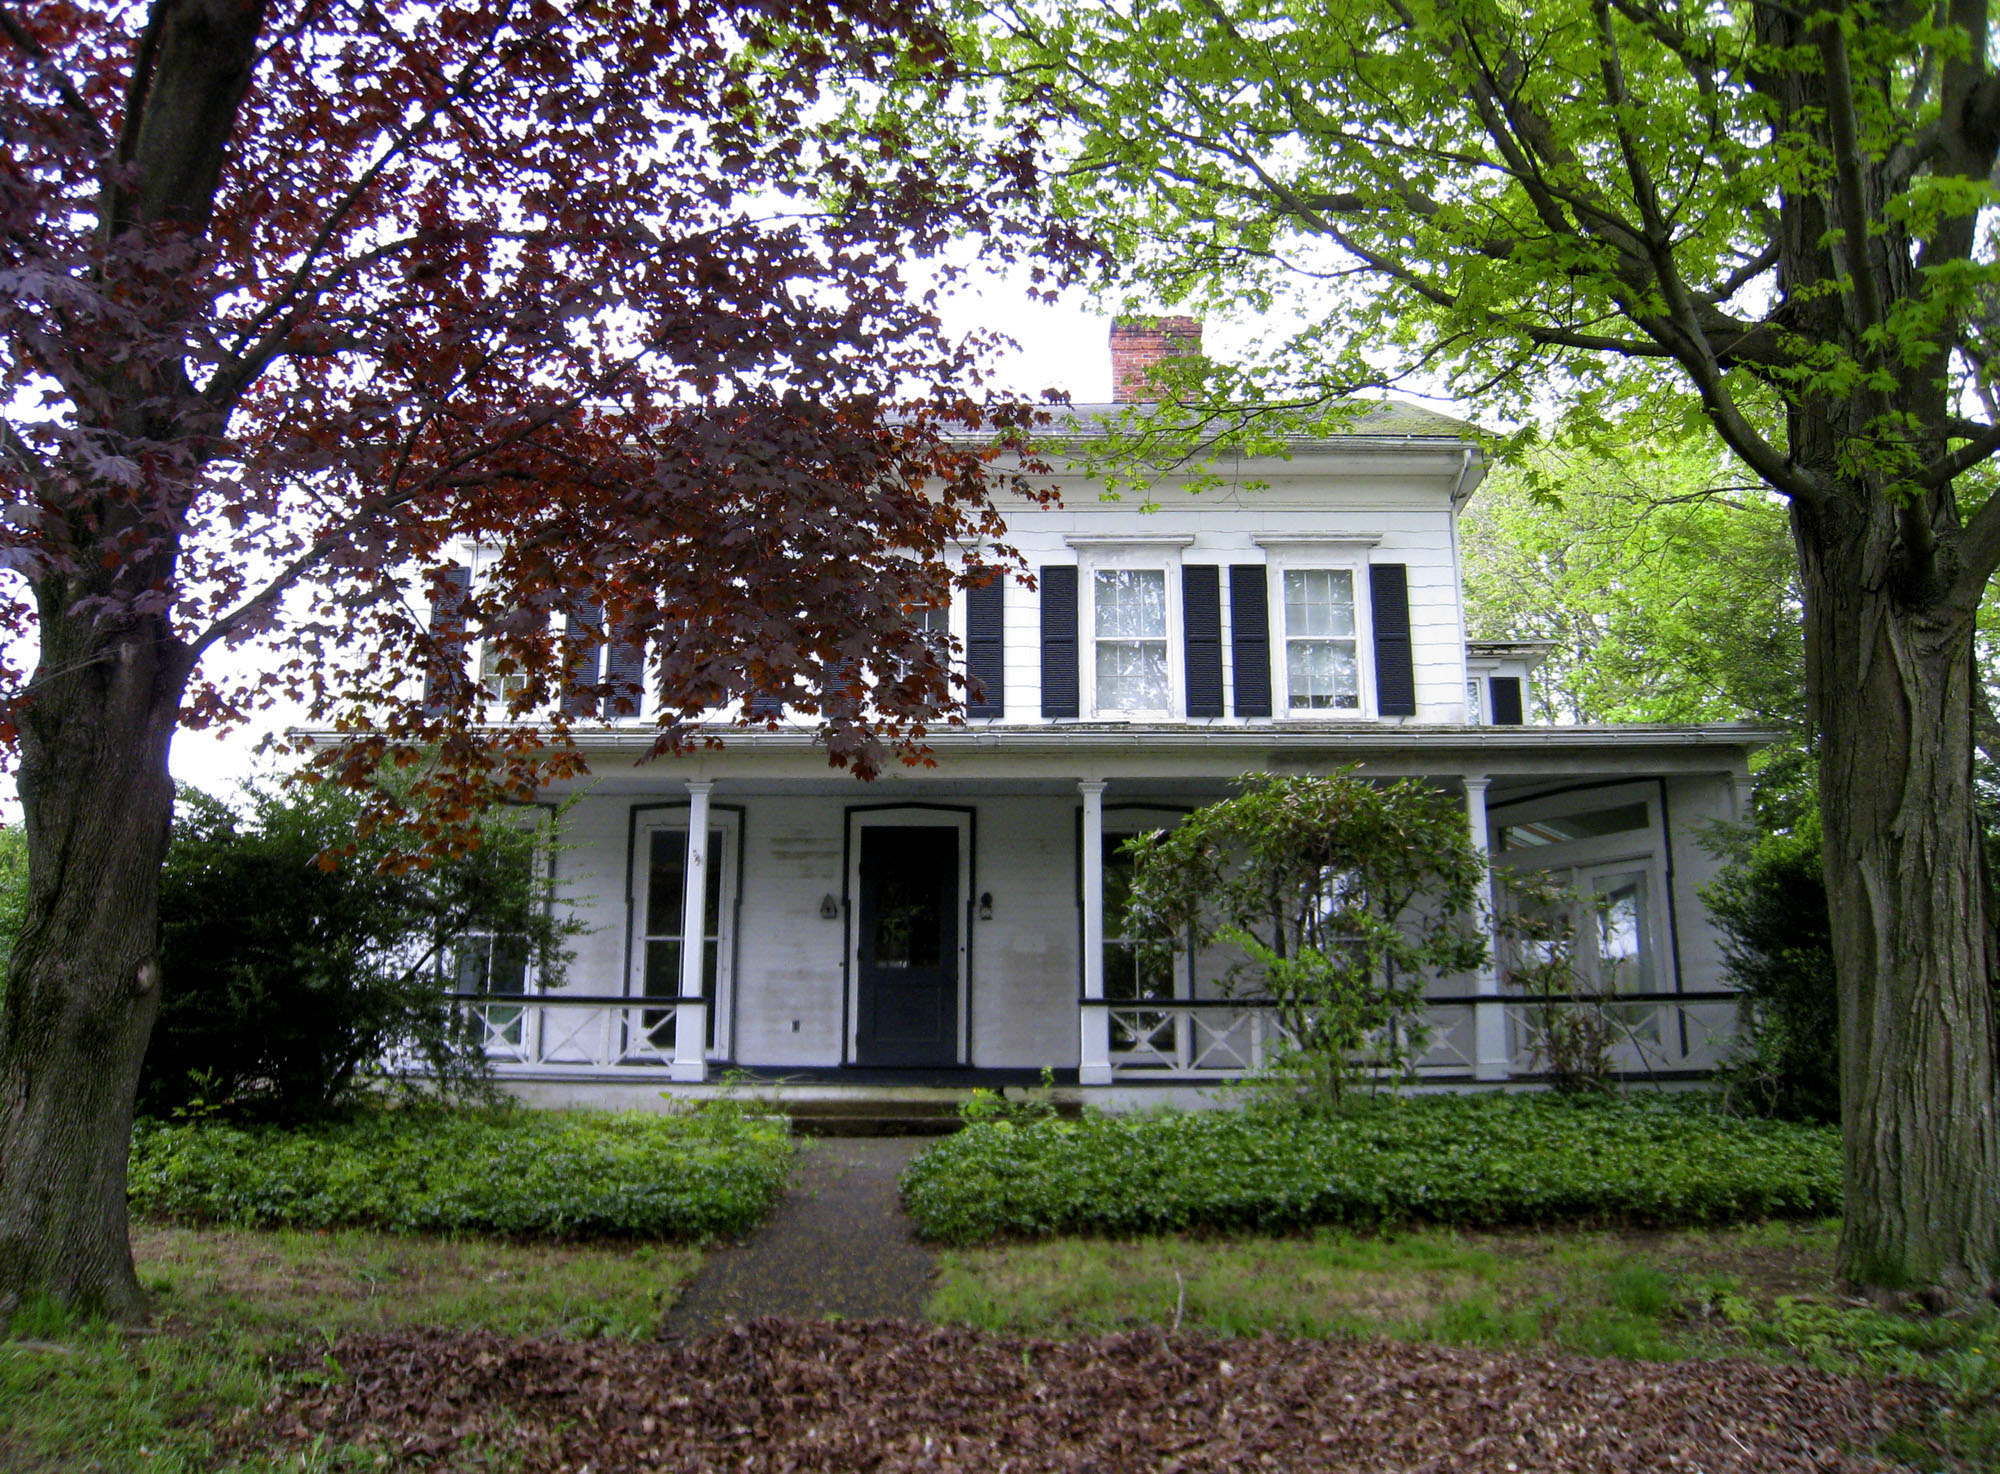 Work on New Milford's Barton House to begin StamfordAdvocate